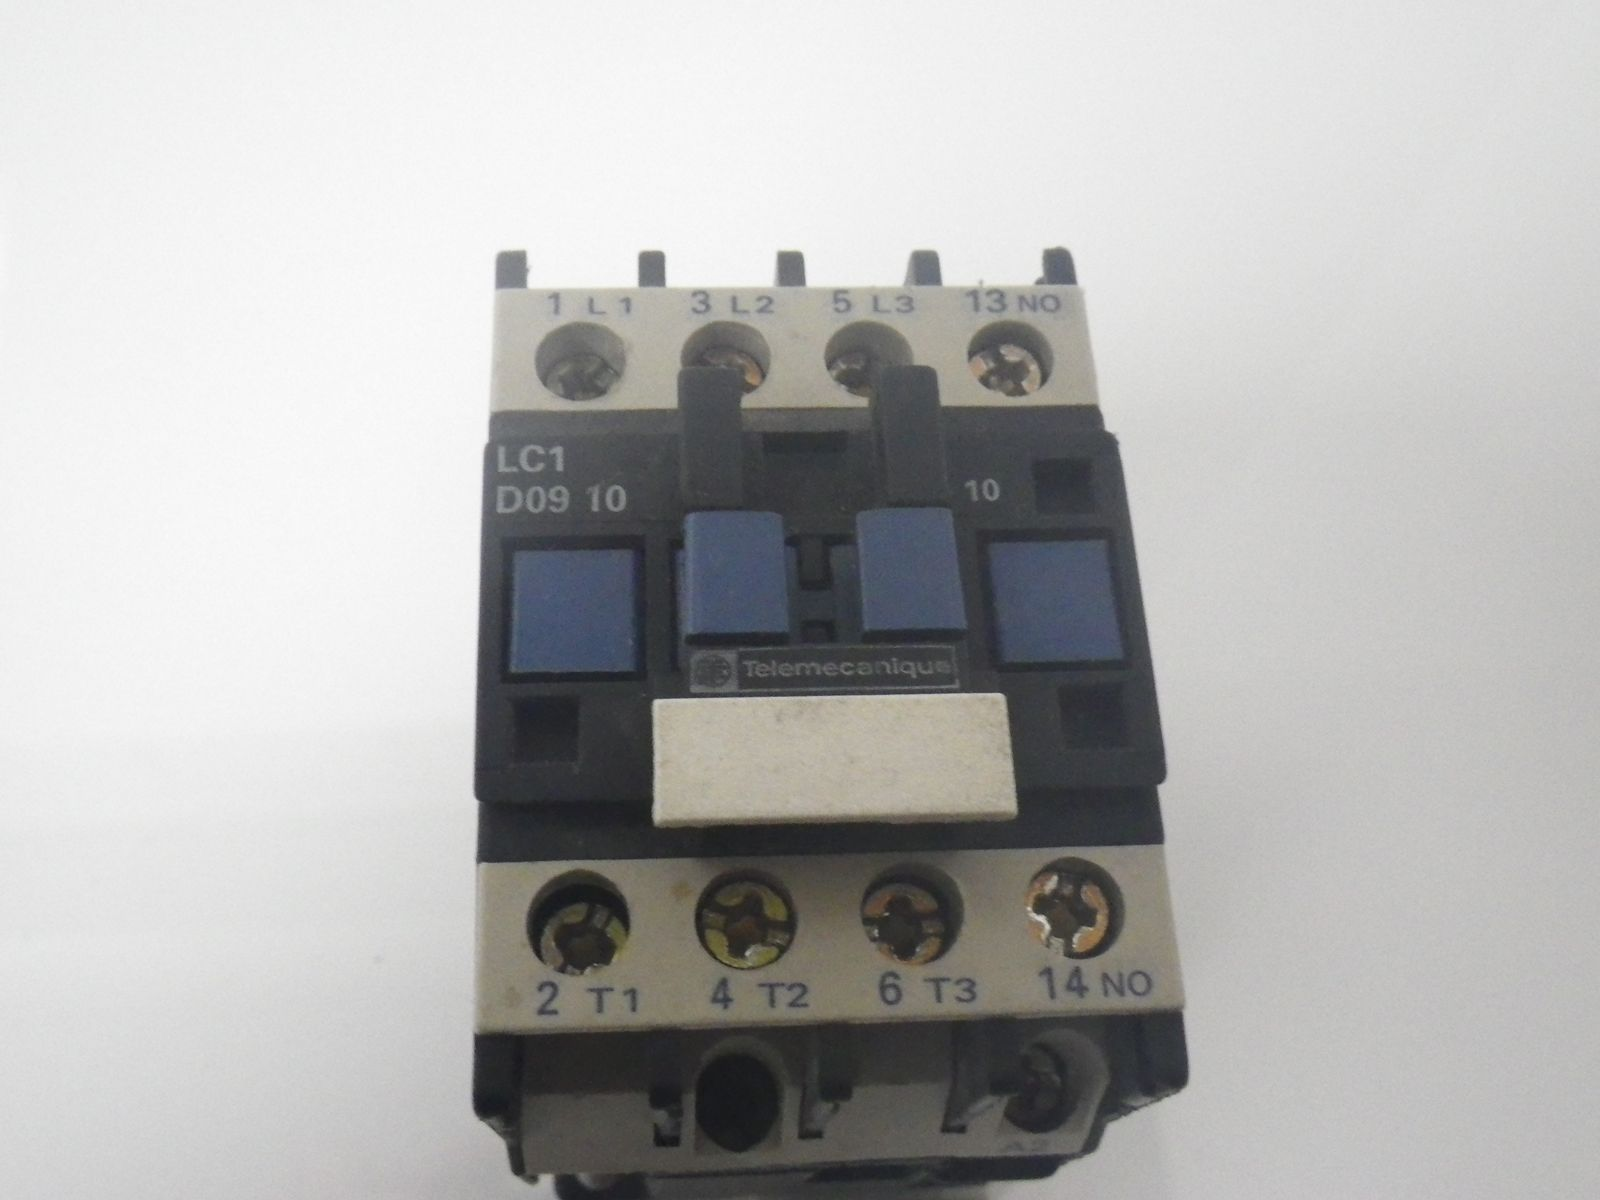 Lc1 D09 10 Lc1d0910 Telemecanique Contactor  Used And Tested